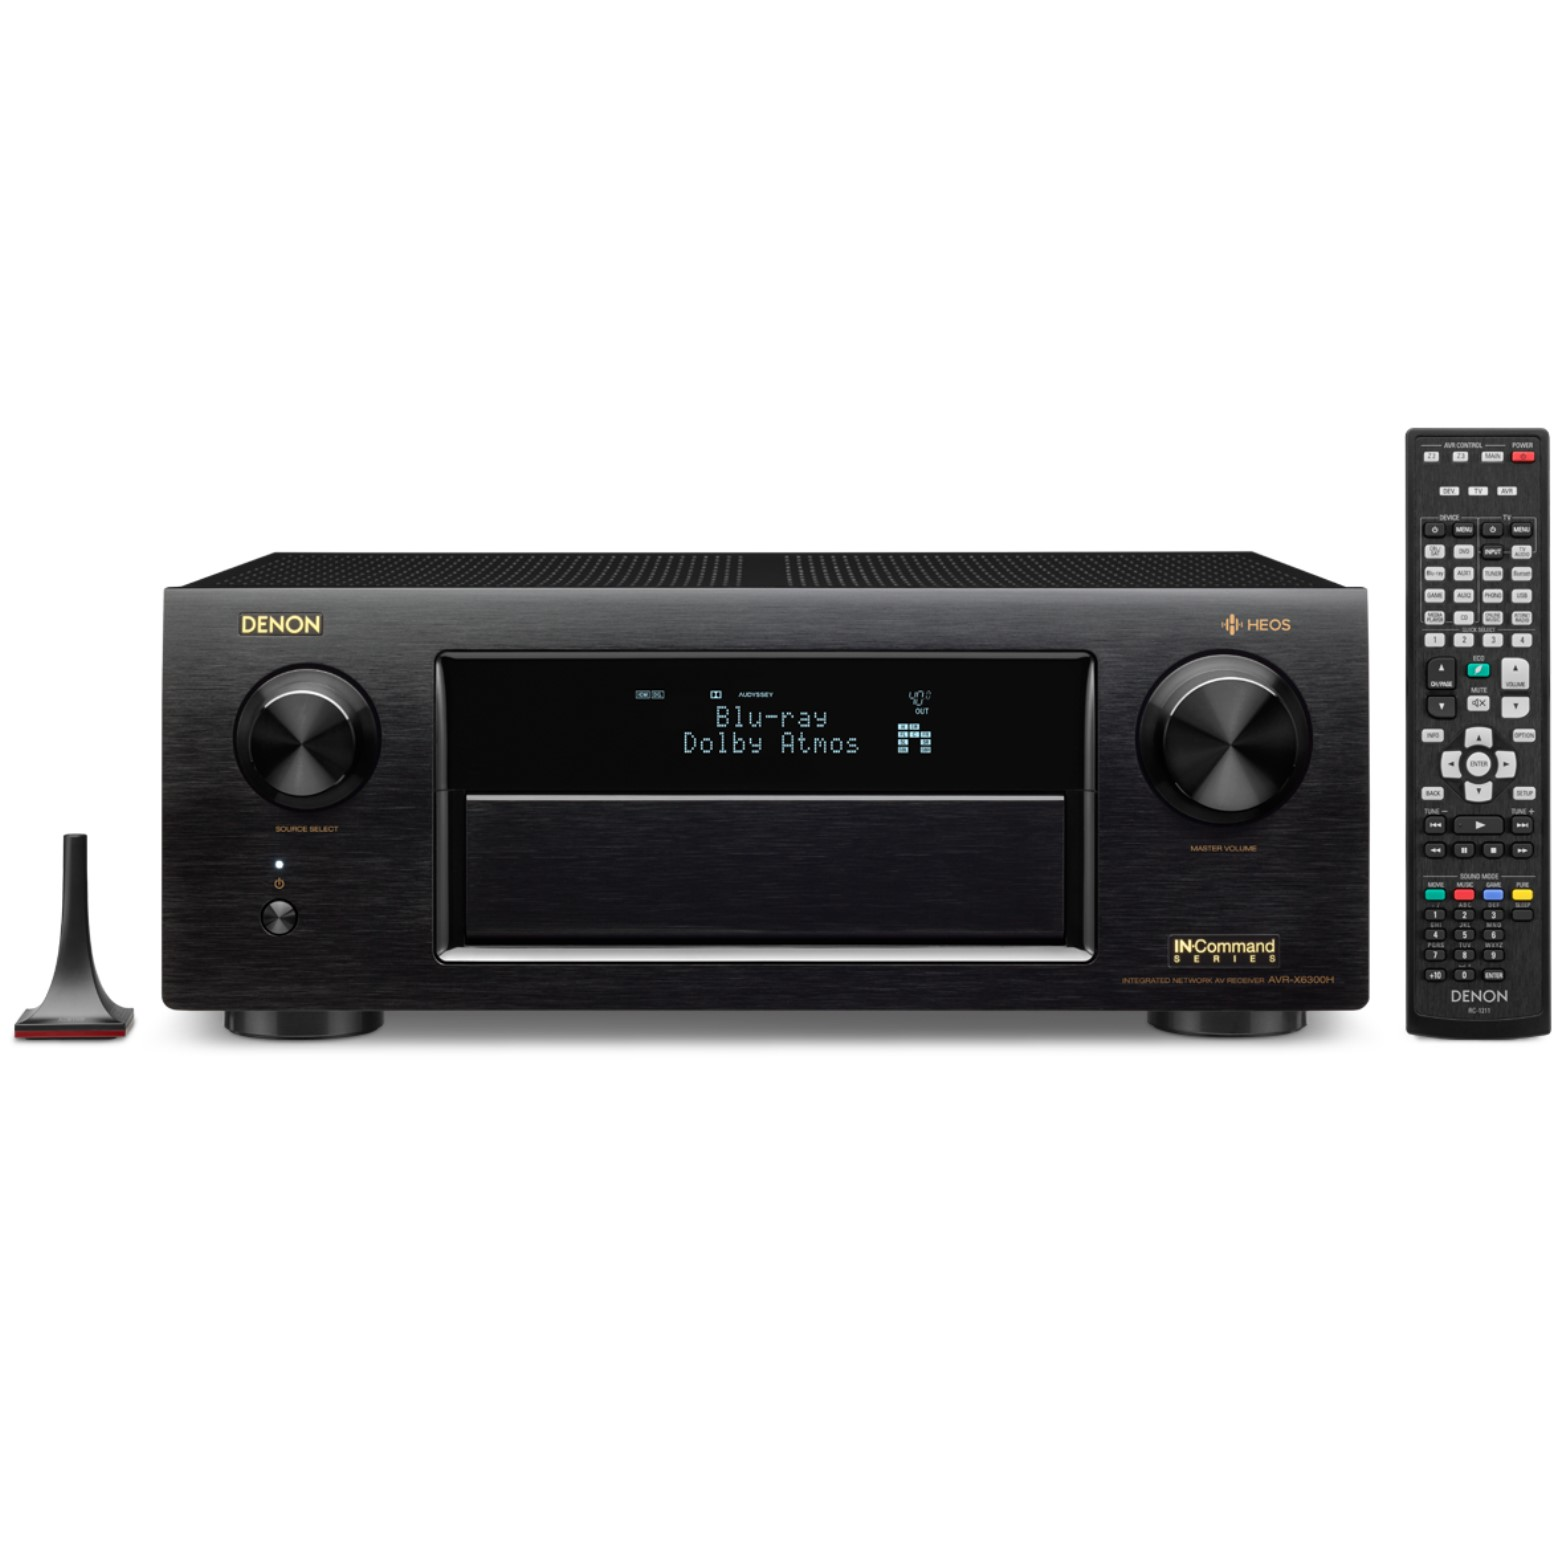 Denon AVR-X6300H 11.2-Channel Full 4K Ultra HD A V Receiver with Built-In HEOS Wireless Technology by Denon